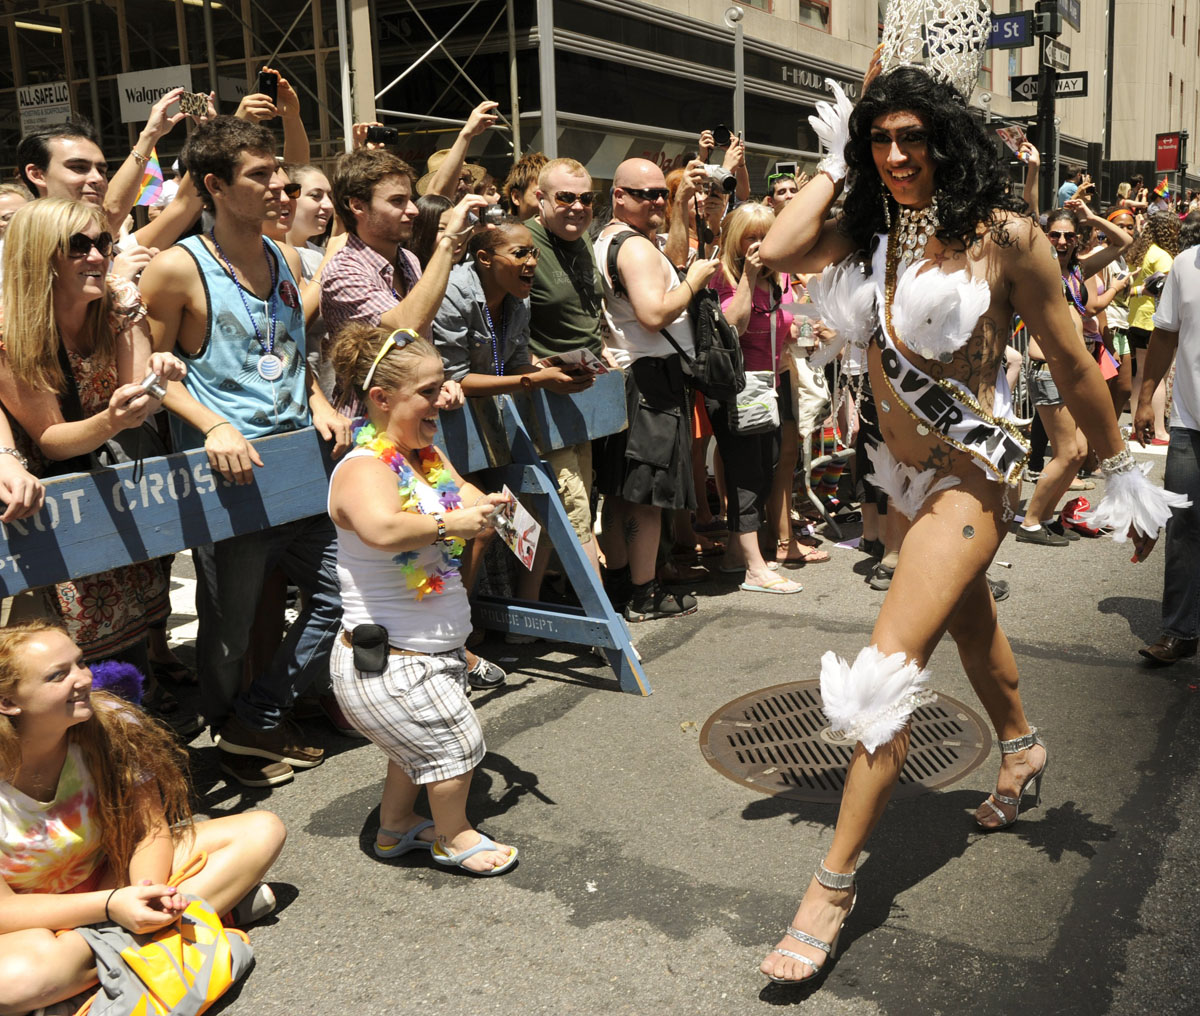 New York: A marcher walks down 5th Avenue during the 2012 New York Gay Pride parade on June 24, 2012. The 43rd-annual parade with more than 500,000 people is part of Gay Pride week. (Timothy A. Clary/AFP/Getty Images)